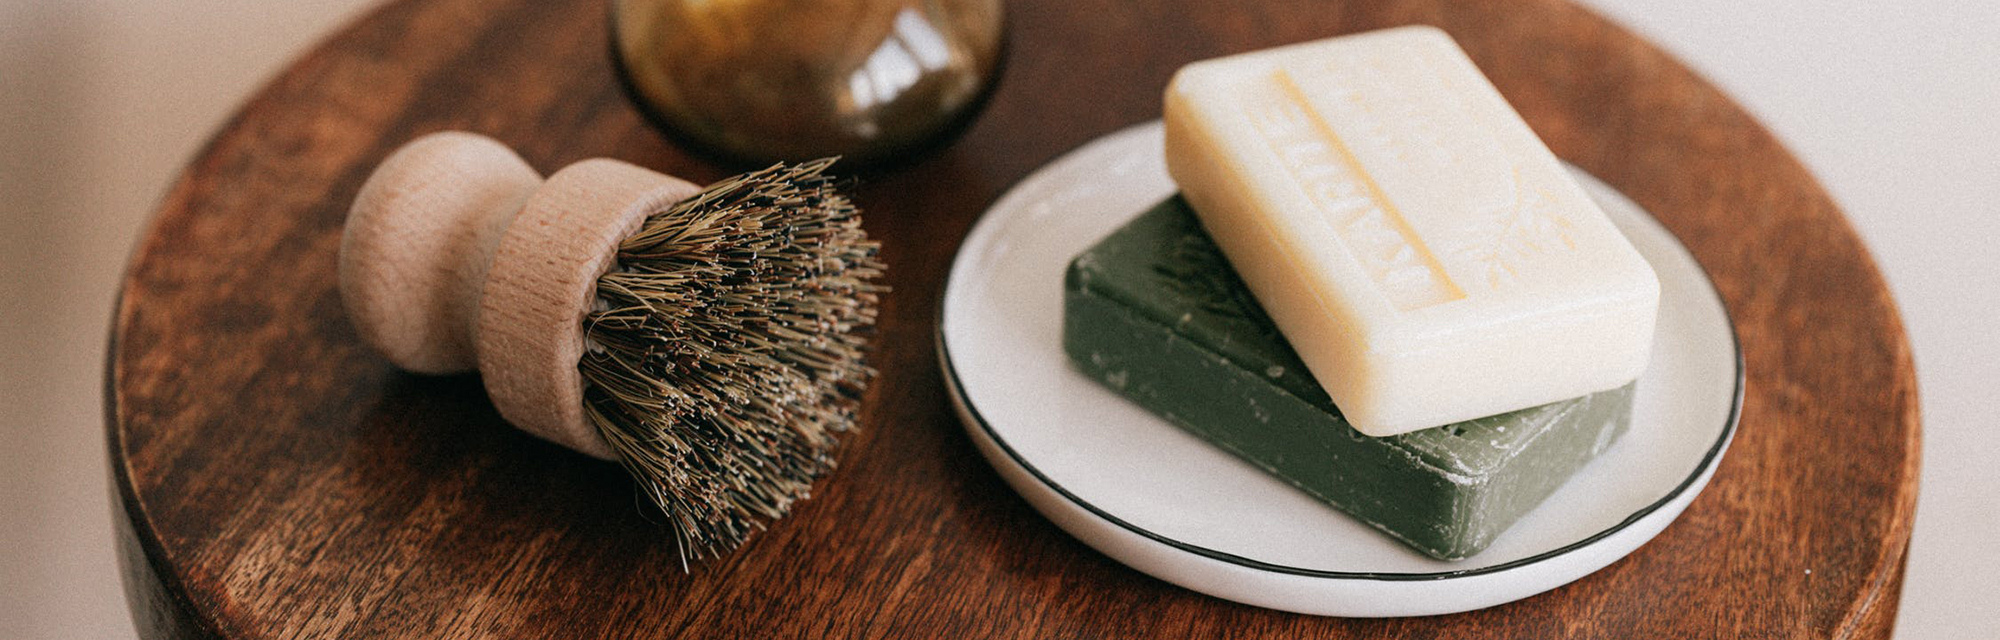 A zero waste compostable dish brush sits on a wooden table next to bars of soap and a vase of dried eucalyptus